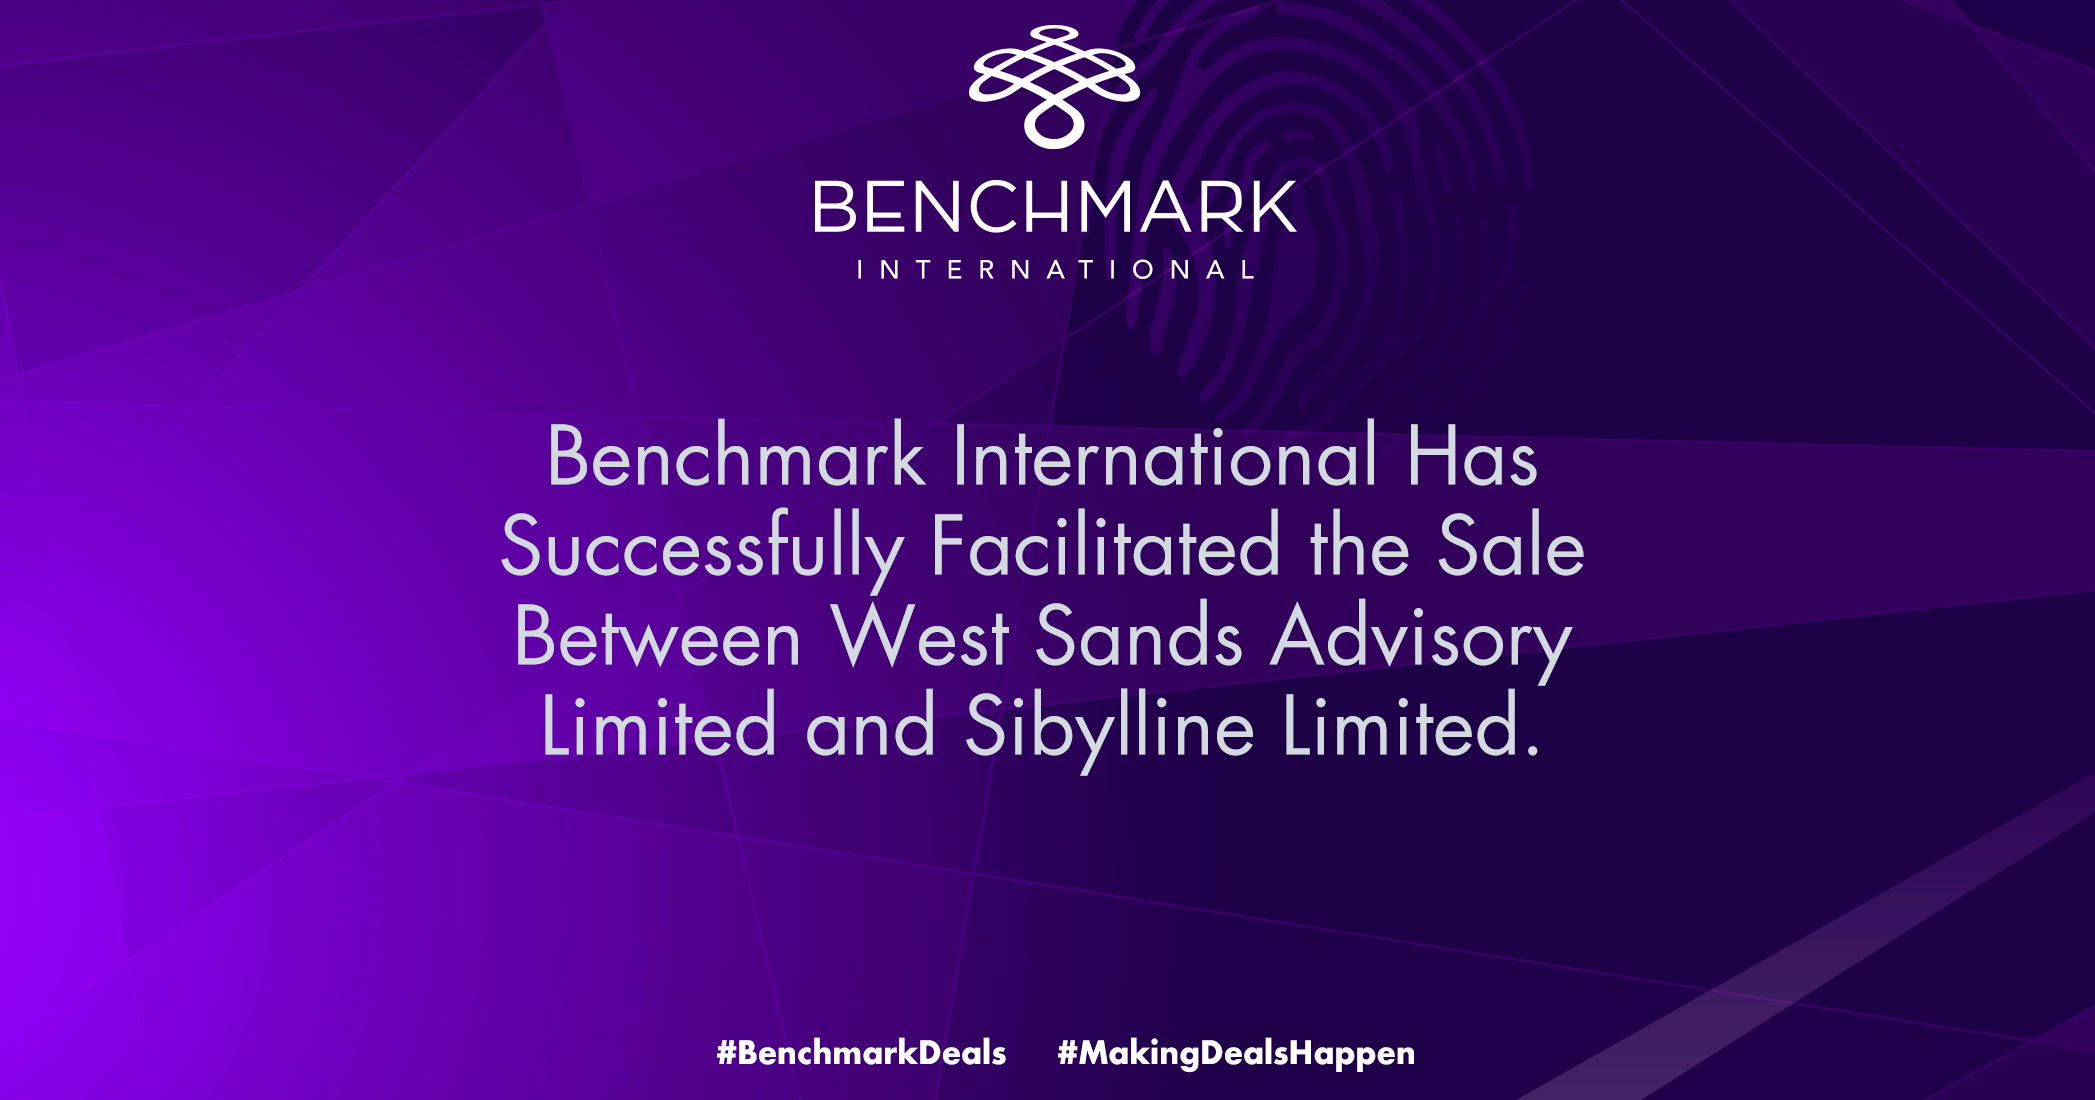 Benchmark International Has Successfully Facilitated the Sale Between West Sands Advisory Limited and Sibylline Limited